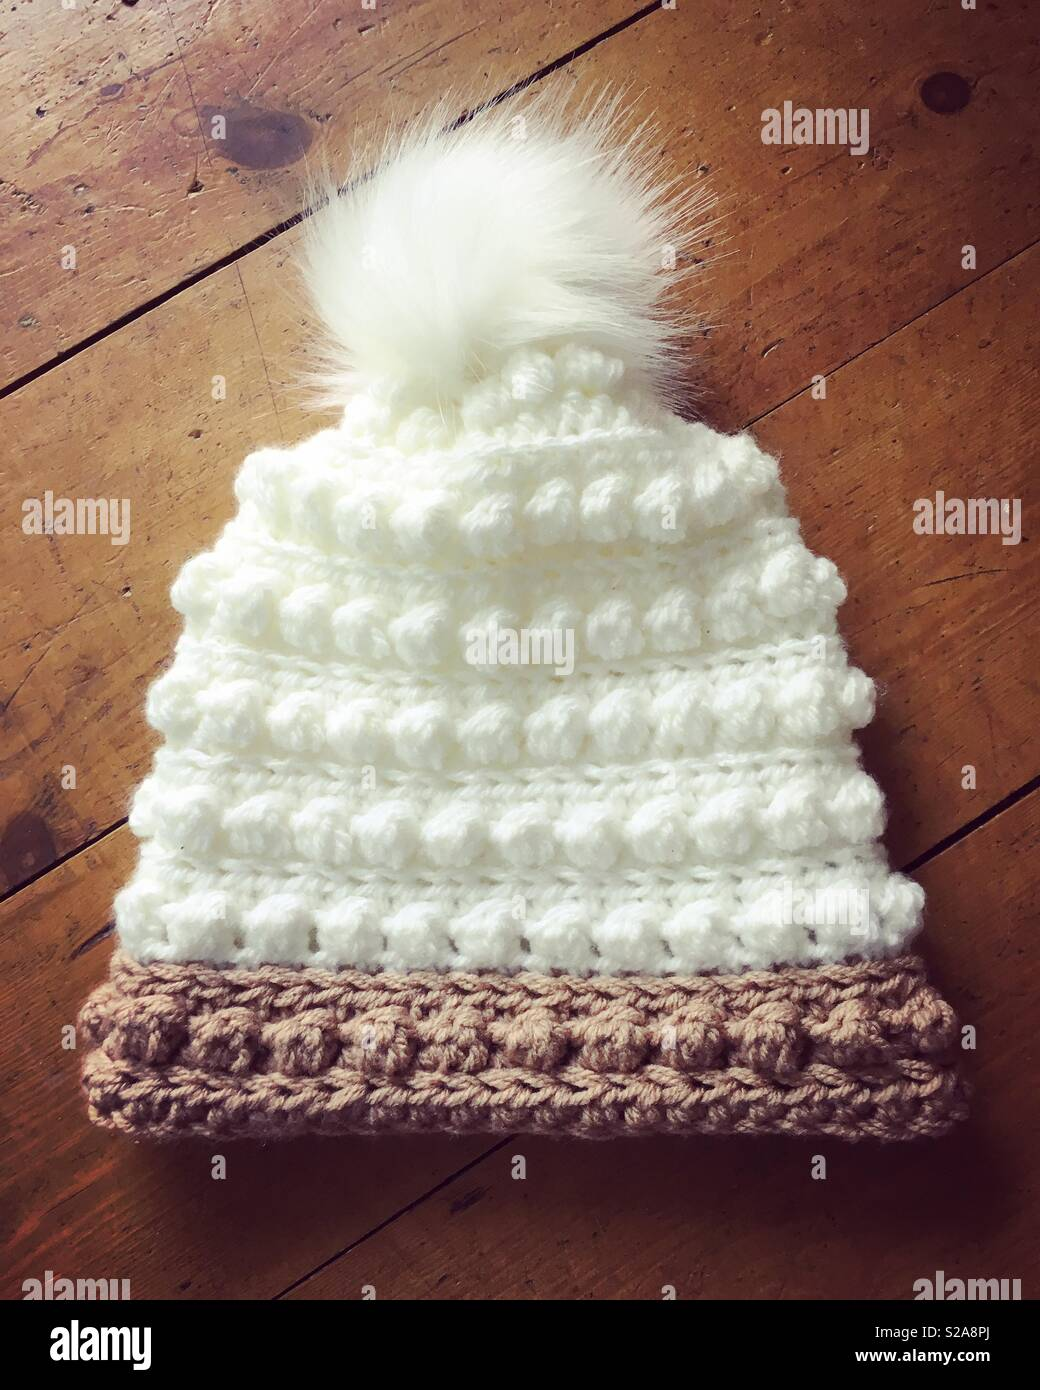 Crochet Bobble Hat Imágenes De Stock   Crochet Bobble Hat Fotos De ... 6f7580e22a0